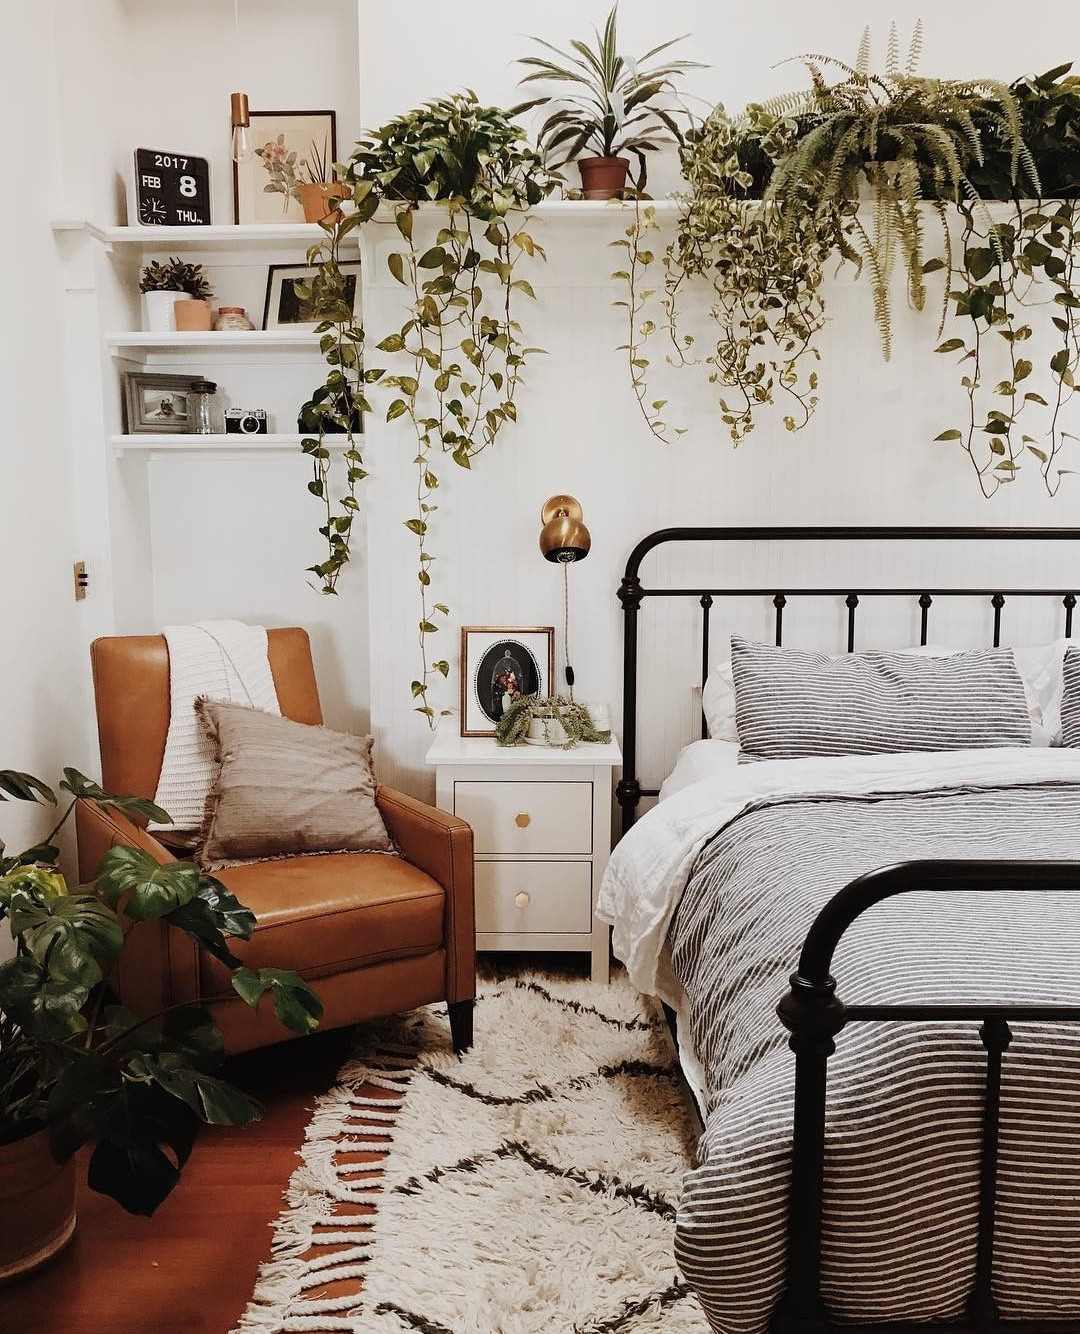 Small Bedroom Plants  Plant life plants in bedroom home decor cute bedrooms